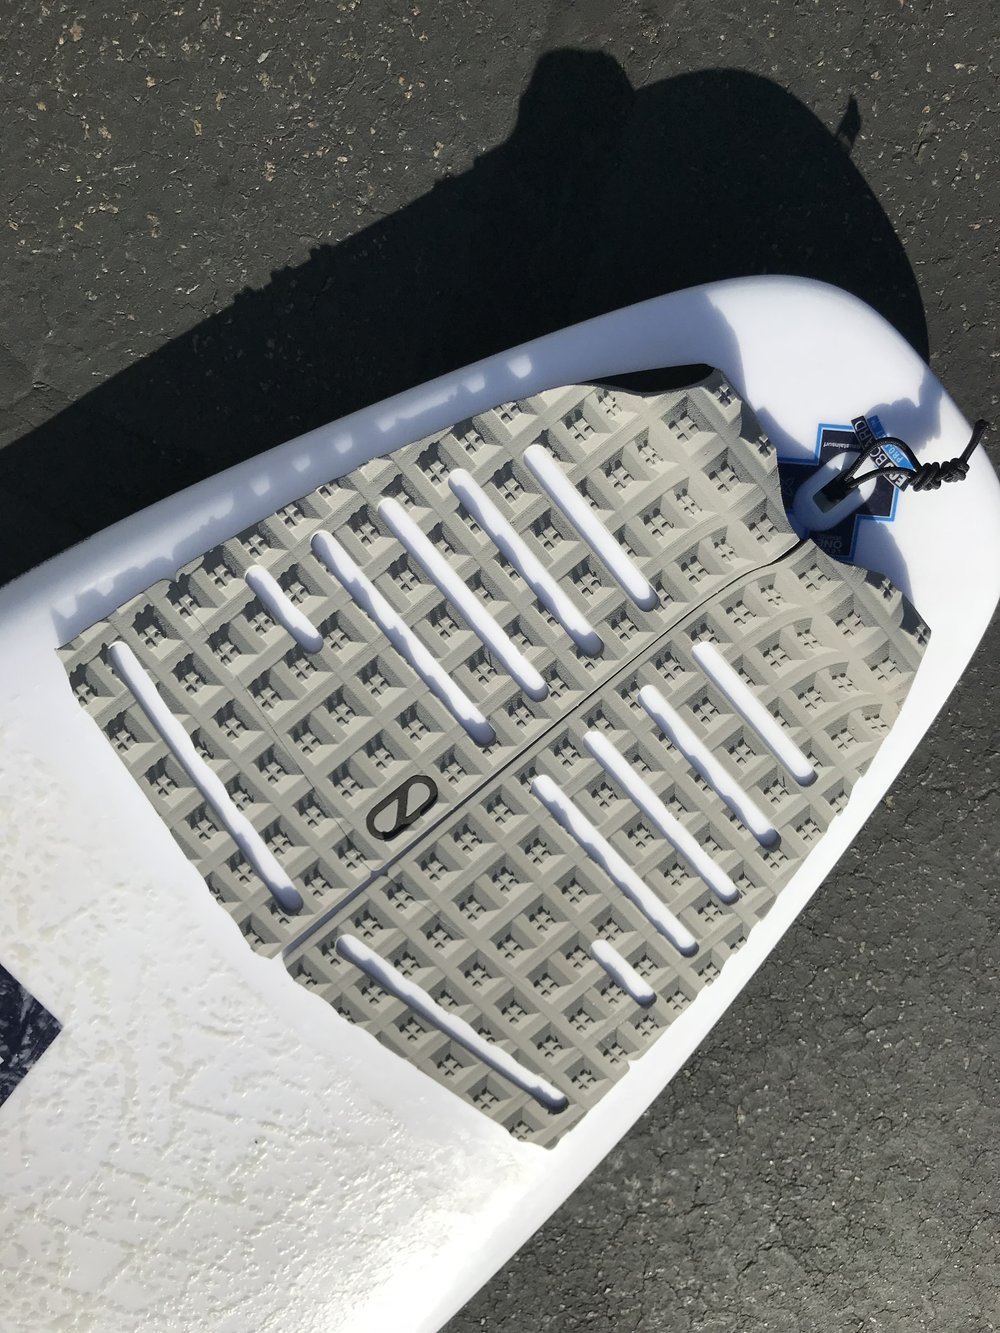 Flat pads give you more flexibility to move your foot while surfing compared to pads with arch bars in the center.